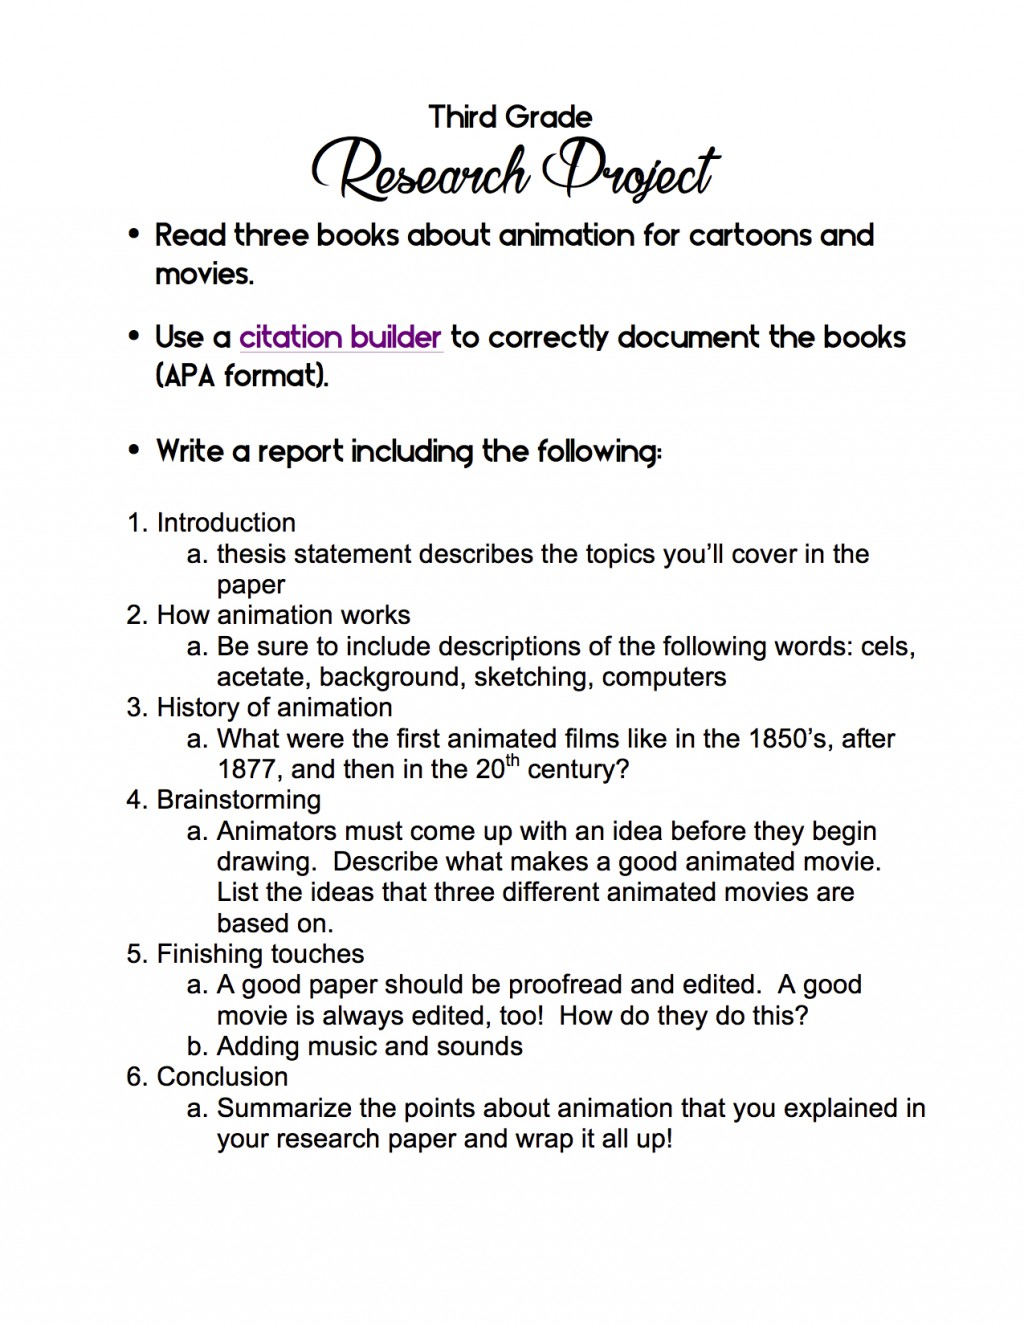 007 3rd Grade Research Project Cancer Paper Topic Surprising Ideas Breast Large